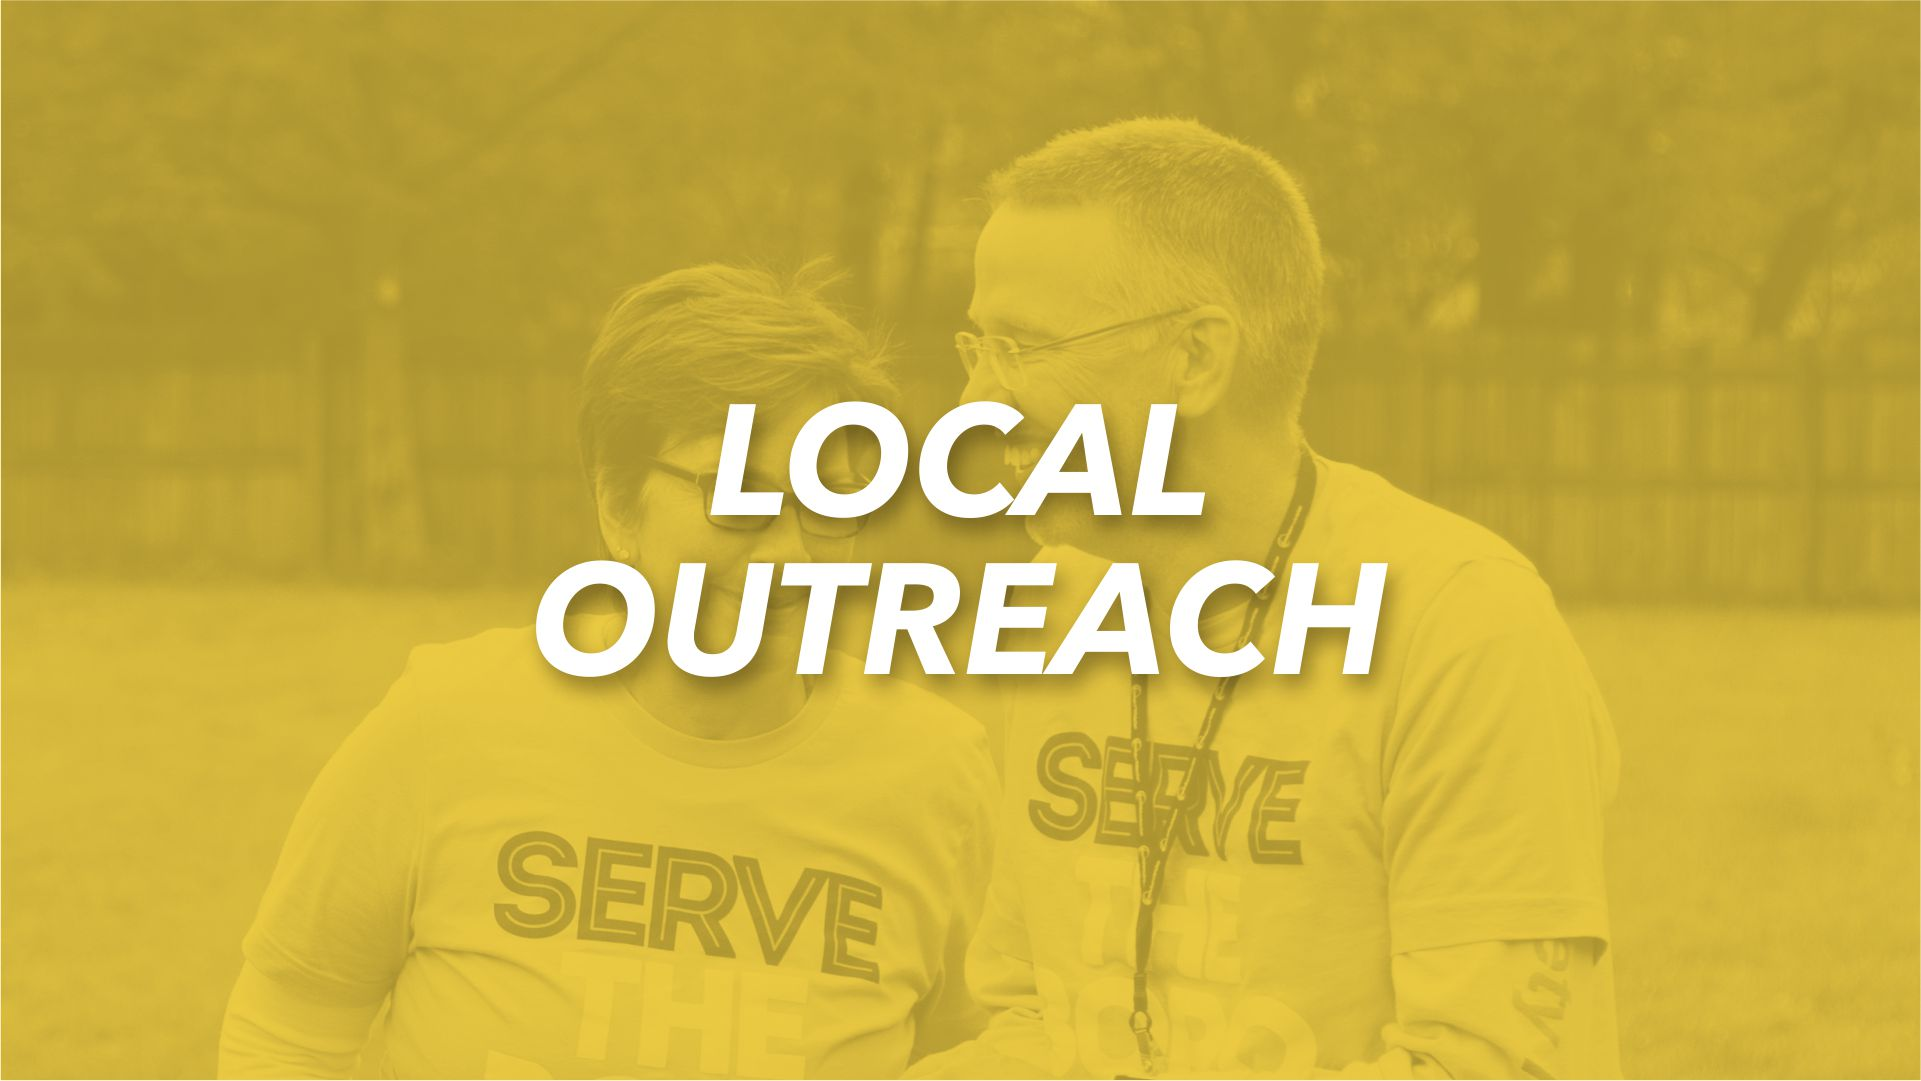 Jesus spent large amounts of time walking, talking and sharing with the people in the community. The purpose of the Local Reach Ministry is to do the same. By meeting needs within the community and partnering with other local ministry minded entities, the love of Jesus can be shared in a powerful way.